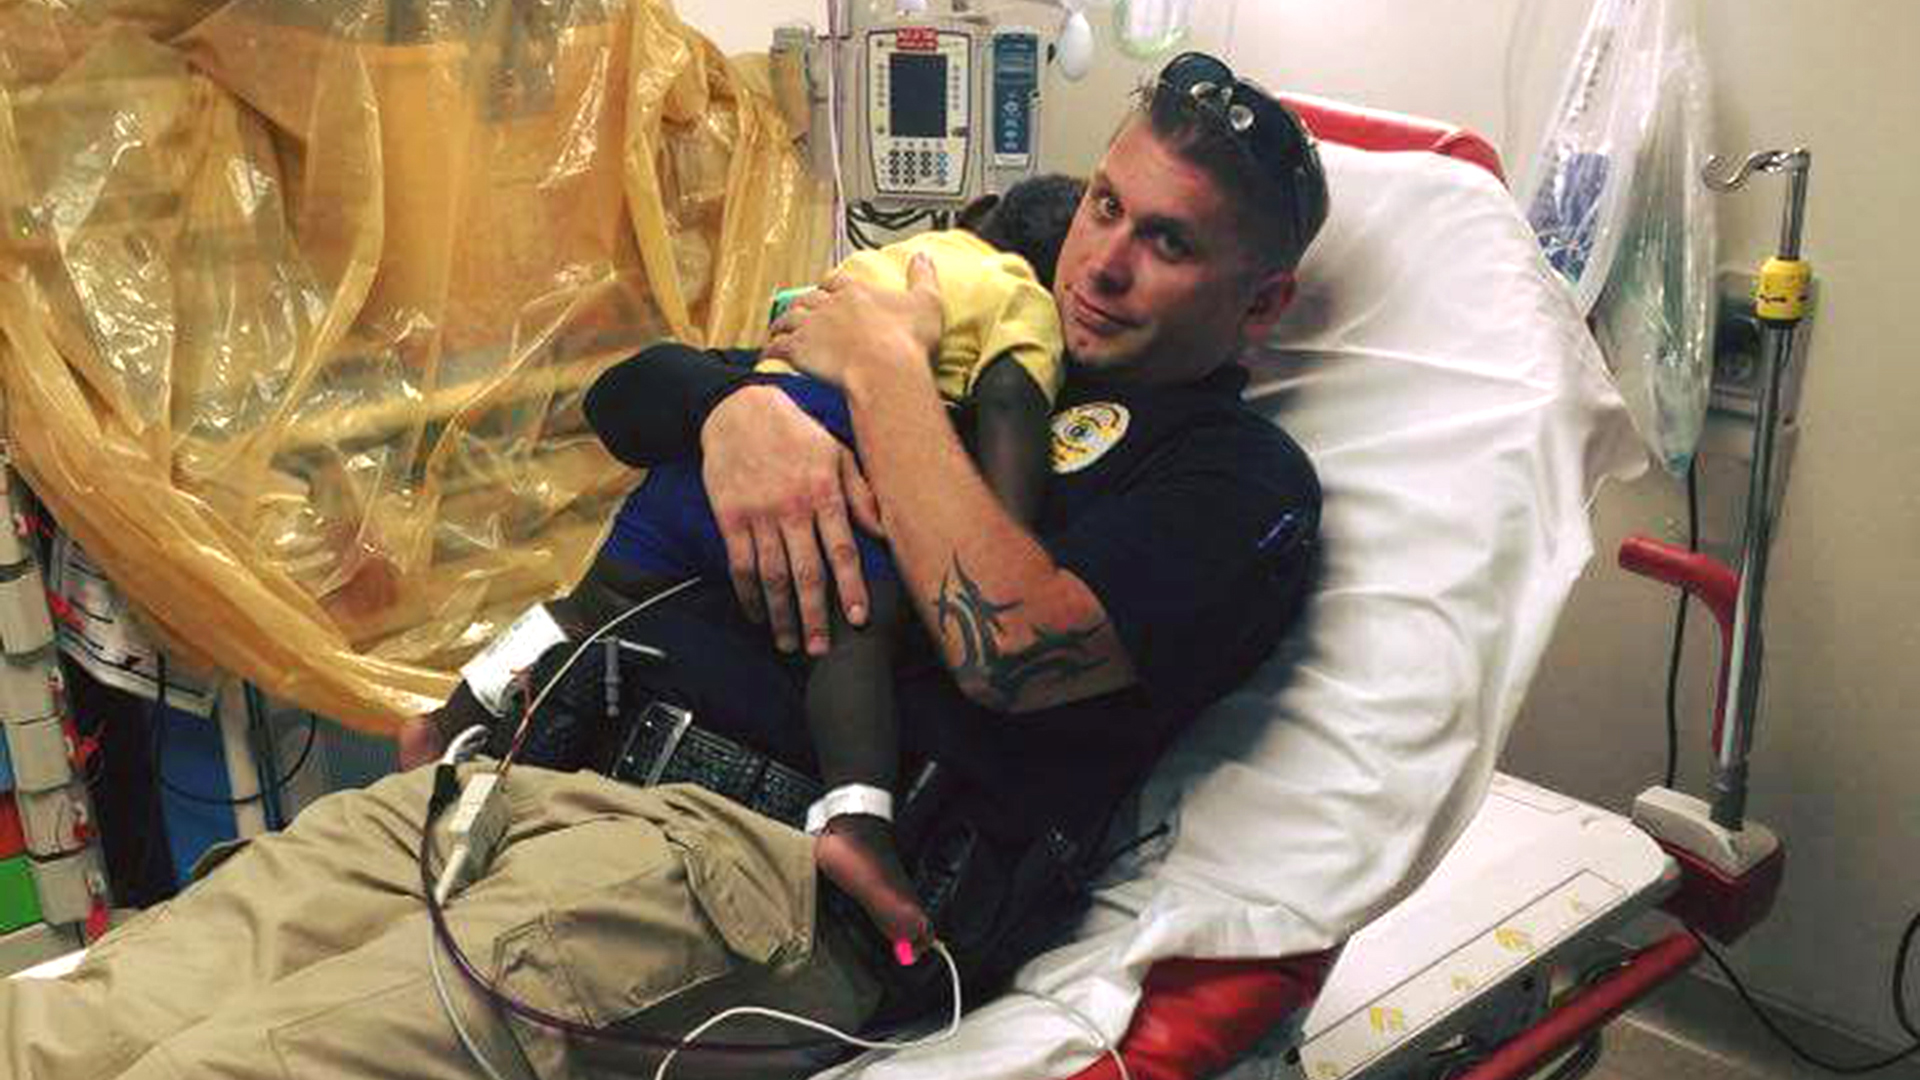 Police Officer Comforts Toddler Alone In The Hospital